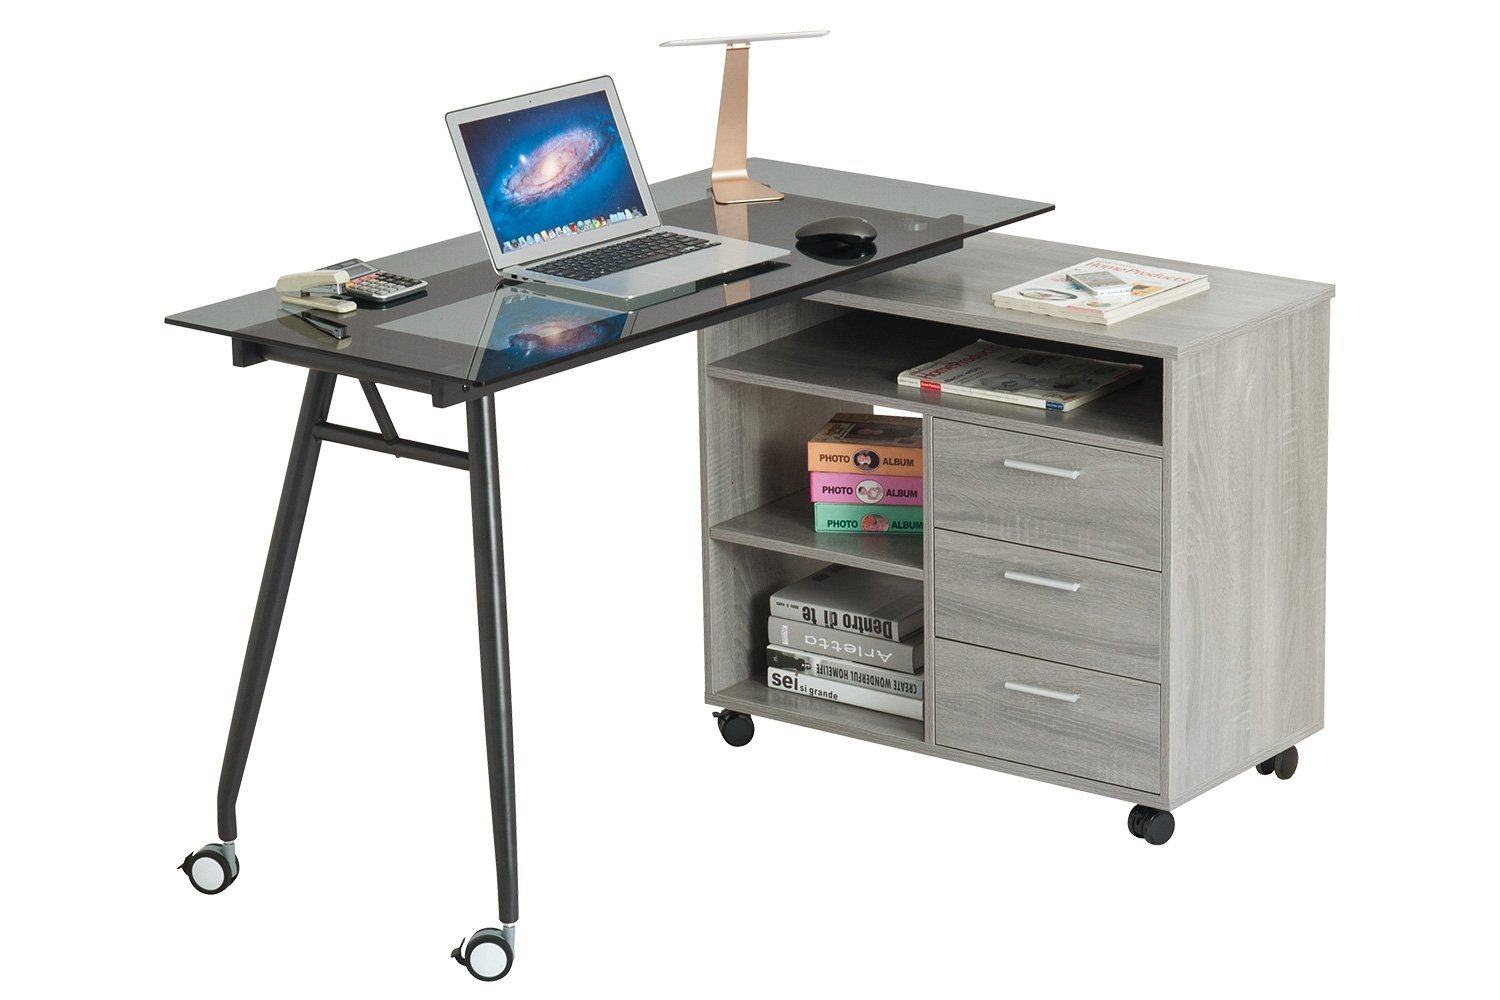 ProHT L-Shaped Office Writing Computer Desk with Drawers and Wheels. Modern Swivel Corner Desk/PC/Laptop/Table/Workstation Black Glass Desk w/ Big Storage.CARB Certified.Gray.(05021A)